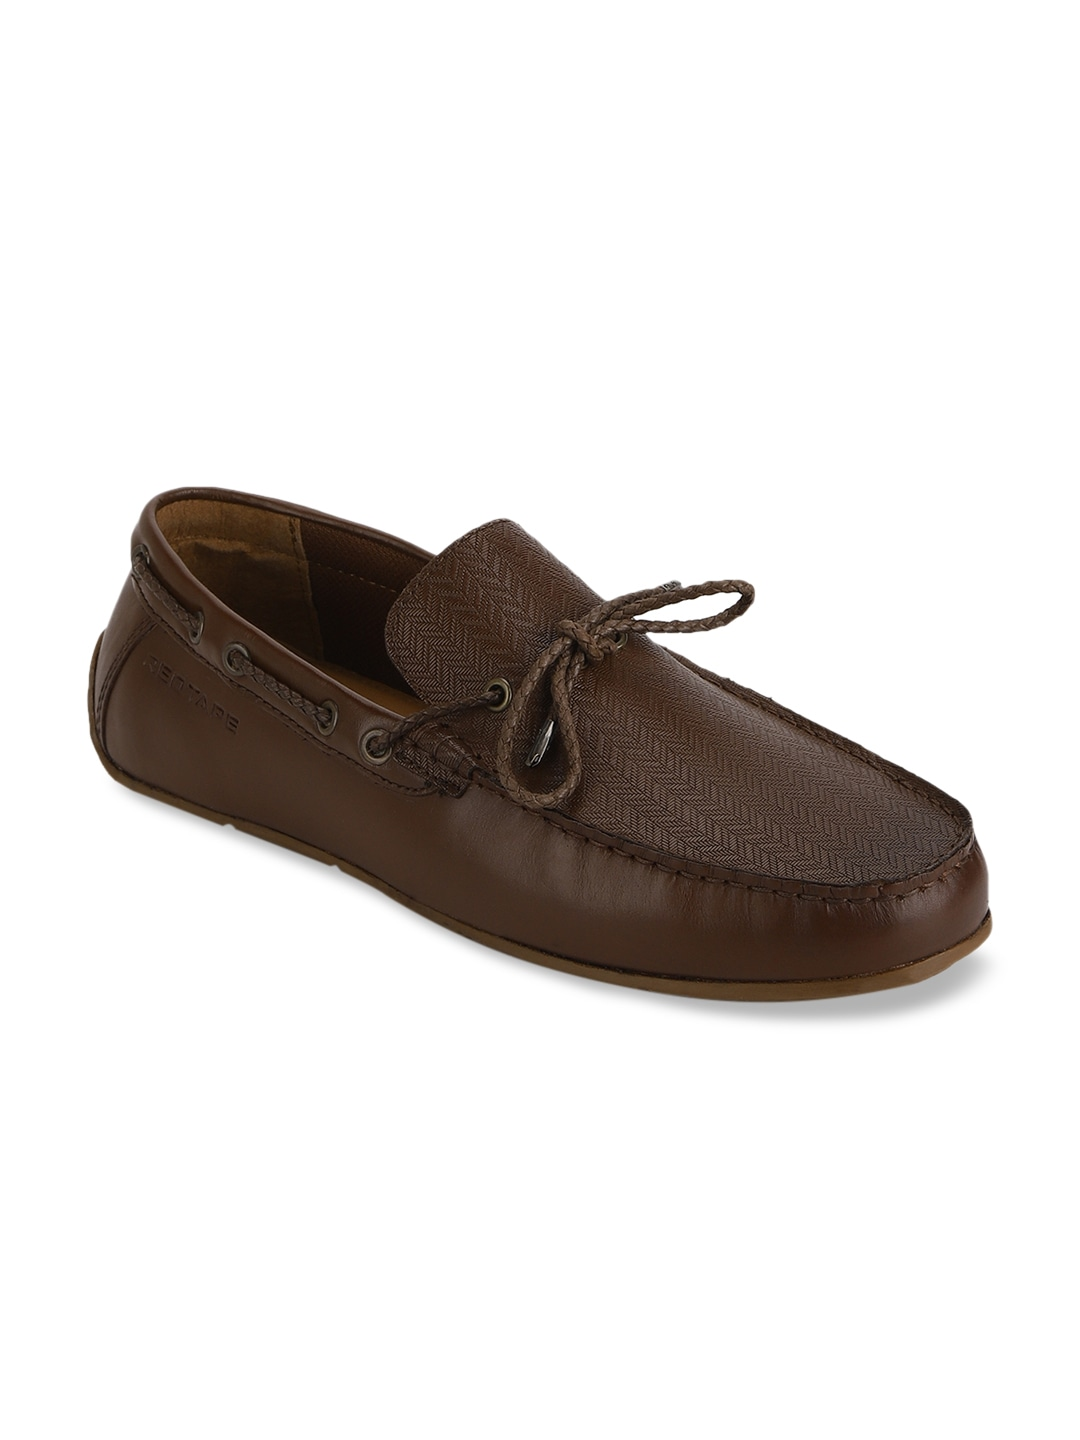 Brown Textured Leather Boat Shoes